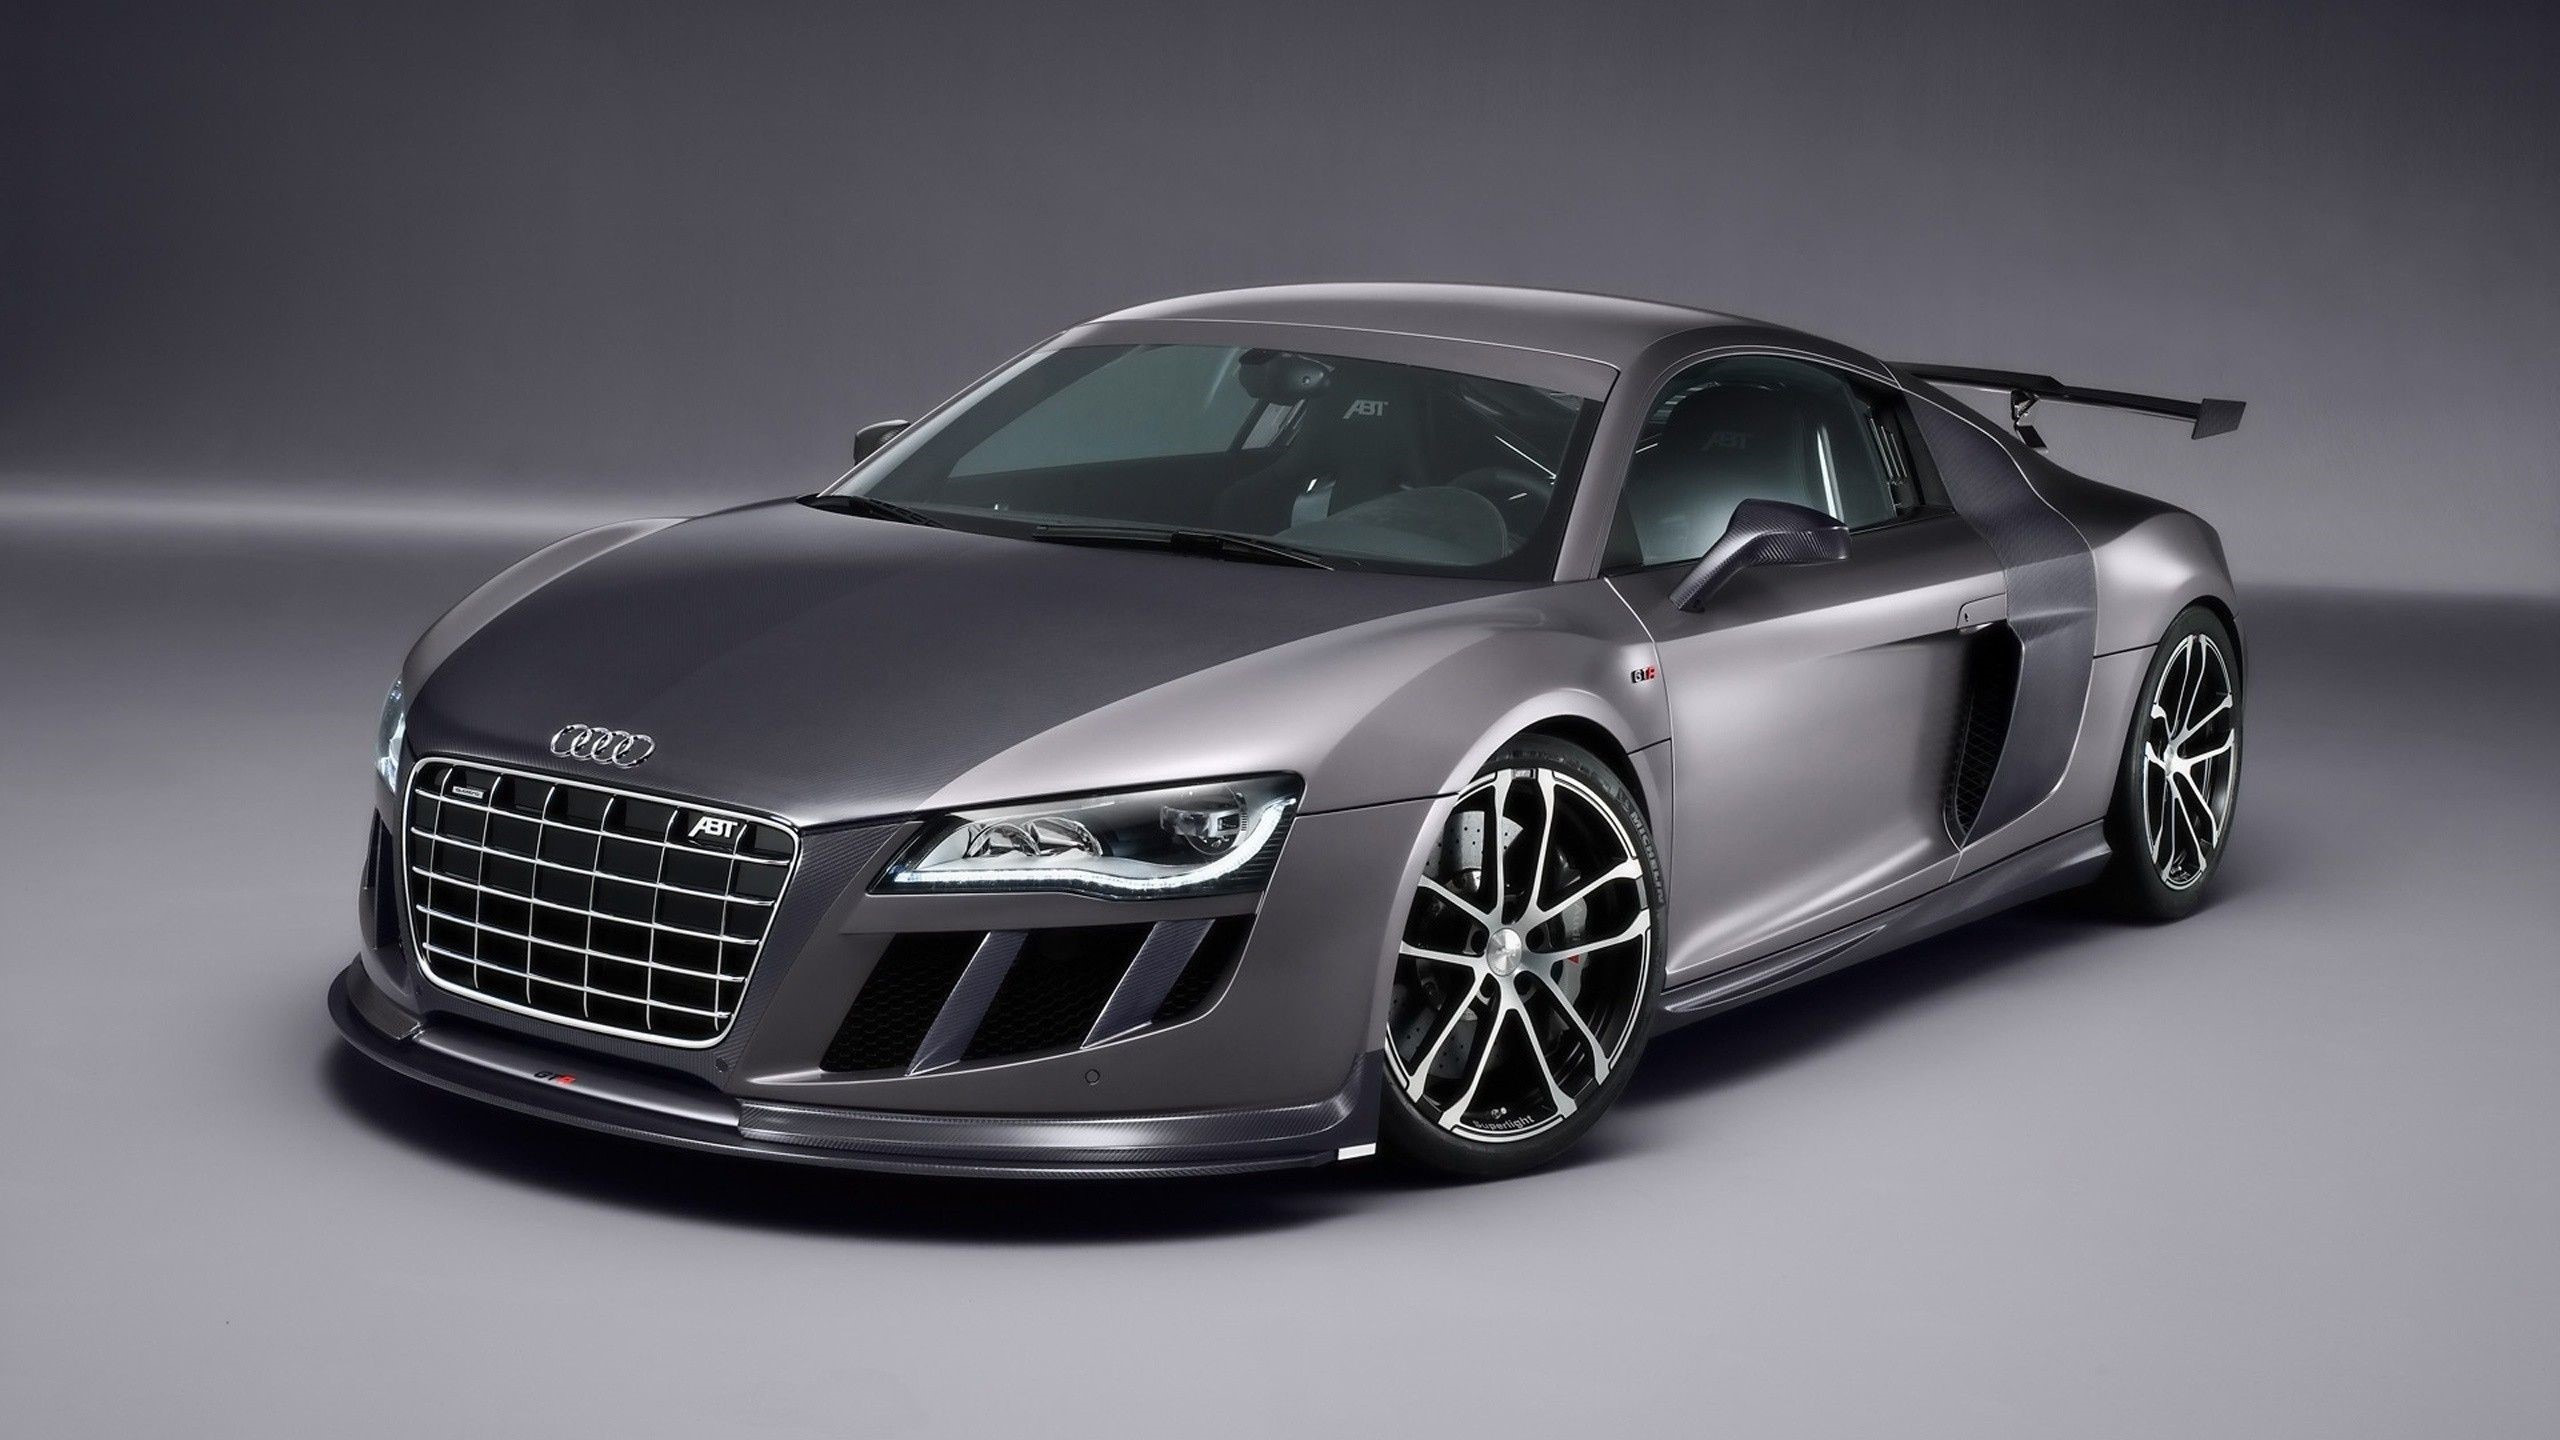 Audi R8 Front 4K Wallpapers